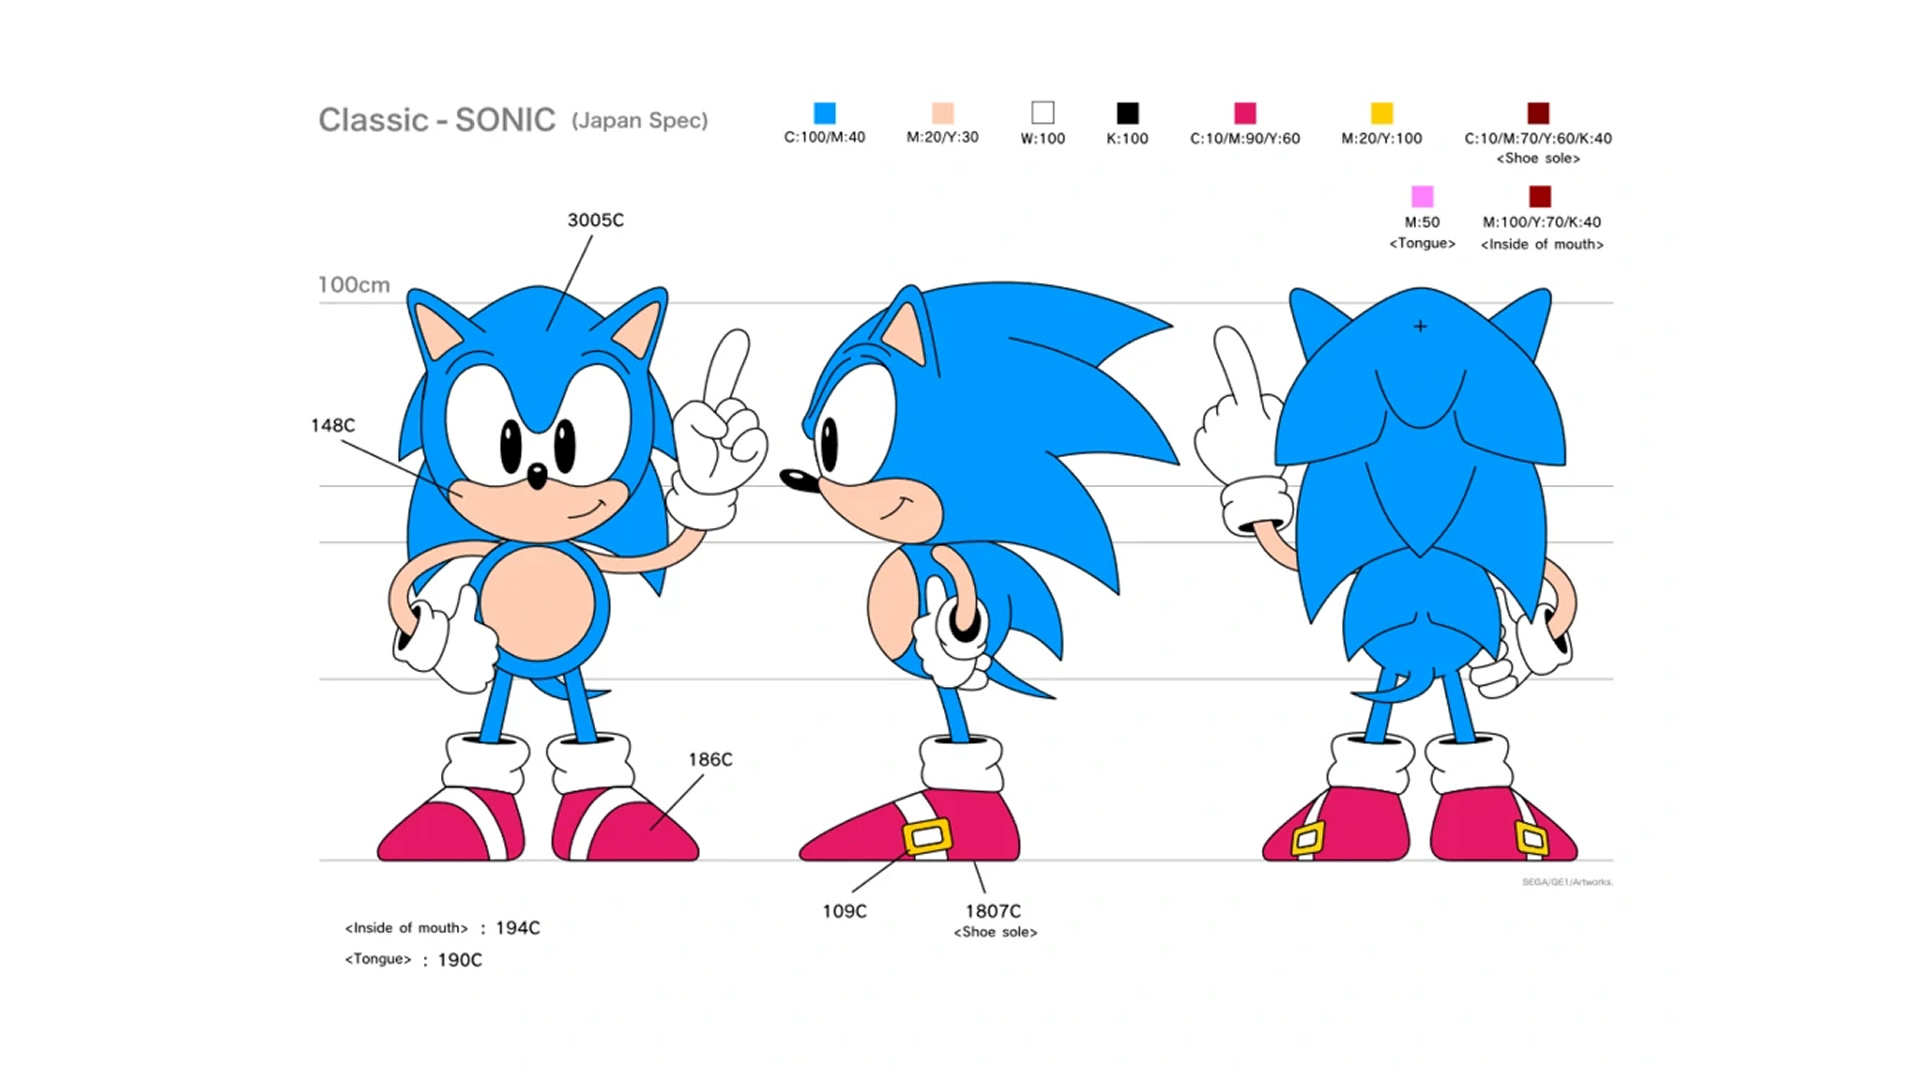 The Origins of Sonic the Hedgehog